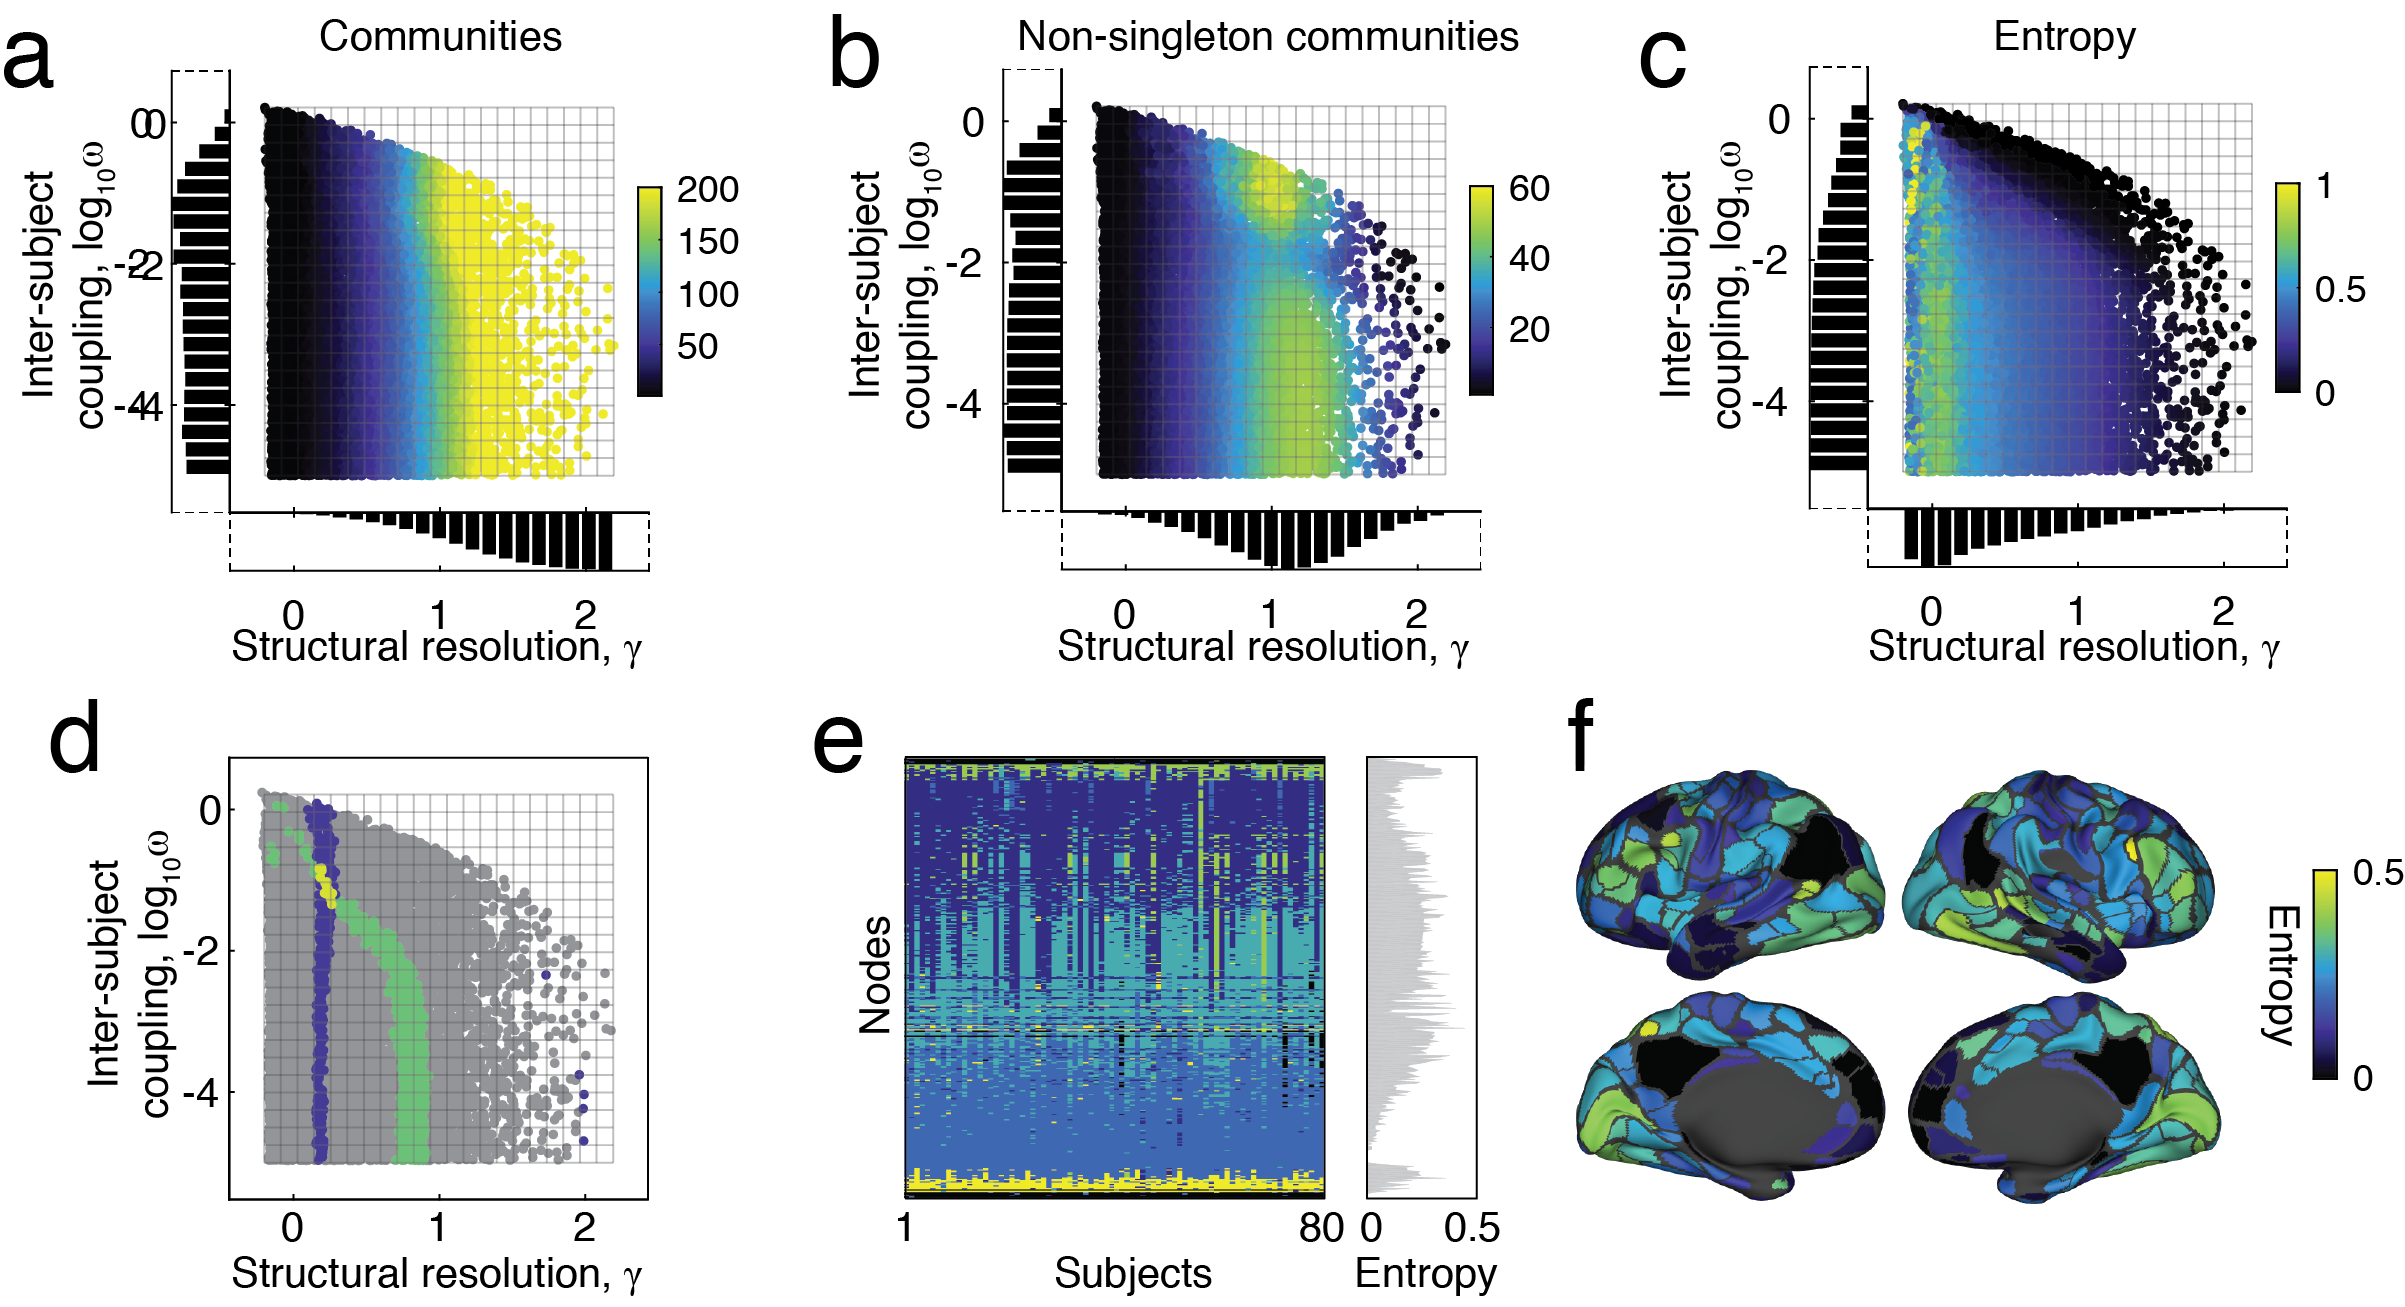 Matlab code for sampling multi-layer, multi-resolution, multi-subject communities using modularity maximization [ Link to code ]. If you use this code, please cite:  Betzel, R. F., Bertolero, M. A., Gordon, E. M., Gratton, C., Dosenbach, N. U., & Bassett, D. S. (2018). The community structure of functional brain networks exhibits scale-specific patterns of variability across individuals and time.  bioRxiv , 413278. [ Link to paper ]  Note: This code requires the  GenLouvain  toolbox. Please download [ here ] and cite both:  Jutla, I. S., Jeub, L. G., & Mucha, P. J. (2011). A generalized Louvain method for community detection implemented in MATLAB.  URL http://netwiki. amath. unc. edu/GenLouvain .  Mucha, P. J., Richardson, T., Macon, K., Porter, M. A., & Onnela, J. P. (2010). Community structure in time-dependent, multiscale, and multiplex networks.  science ,  328 (5980), 876-878. [ Link to paper ]